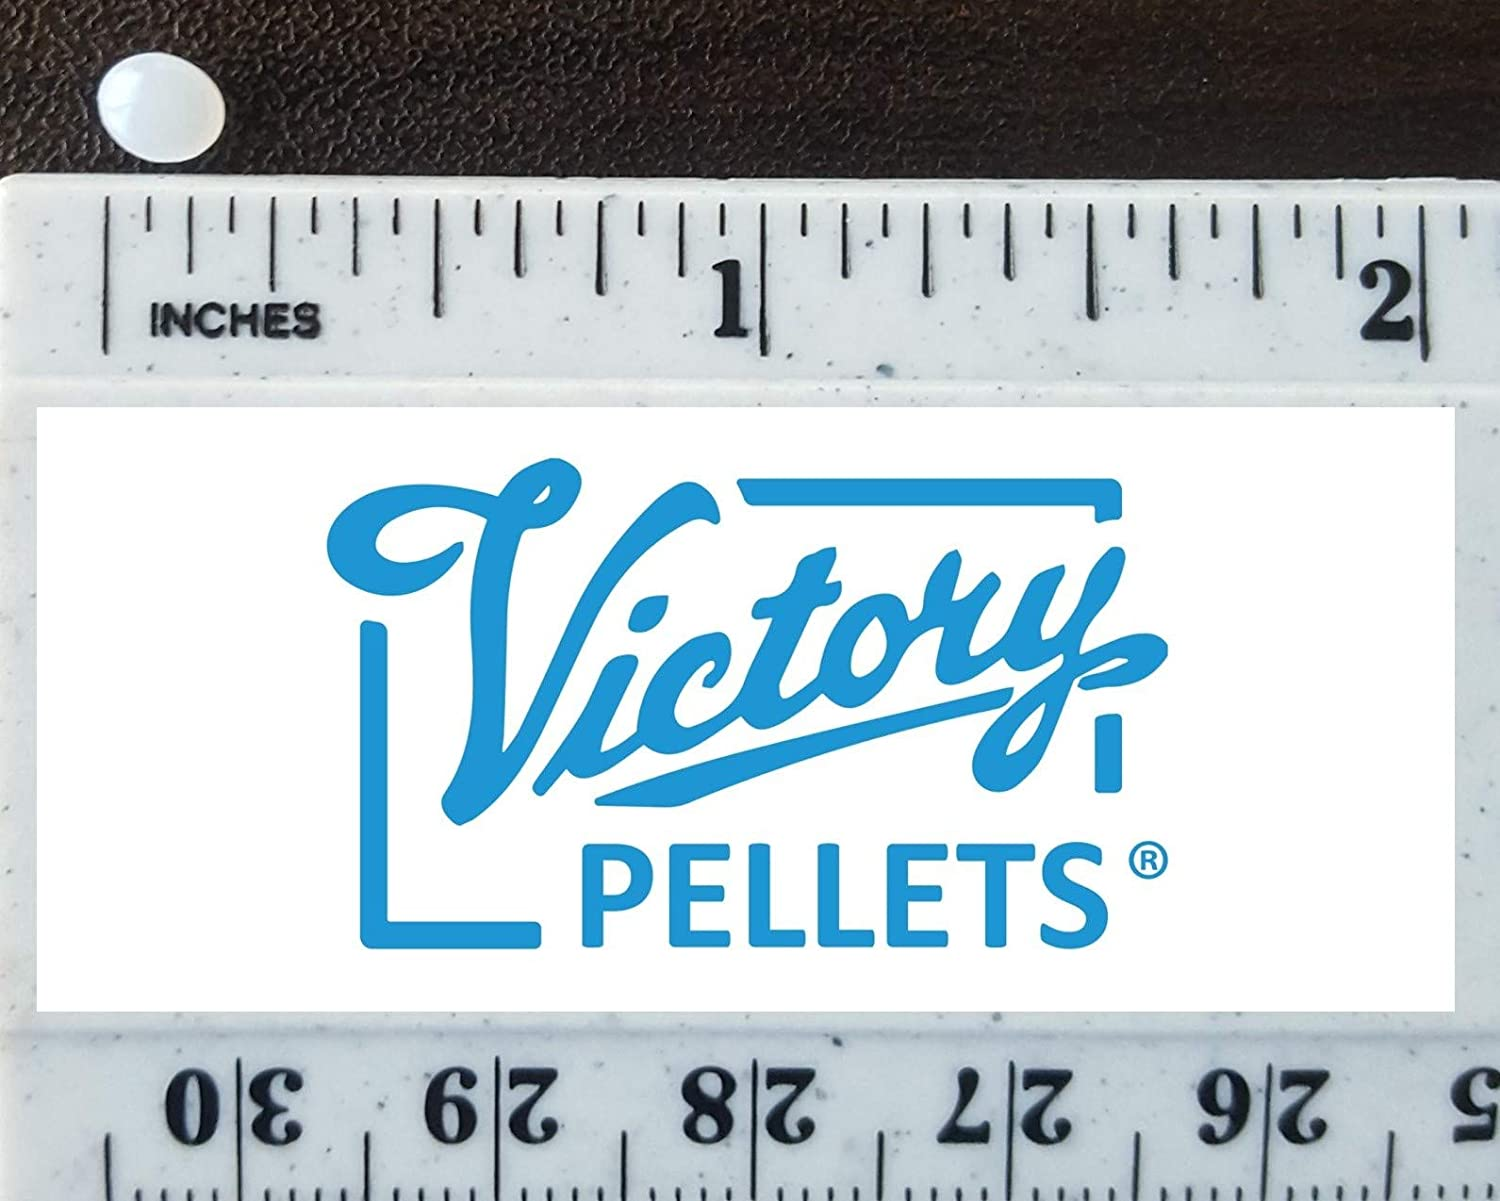 Made in USA. 1 LB Plastic Poly Pellets for Weighted Blankets 1 LB Victory Pellets Flat Cut Washer /& Dryer Safe Rock Tumbling Reborn Dolls Stuffed Bears Plush Toys and Draft Stoppers